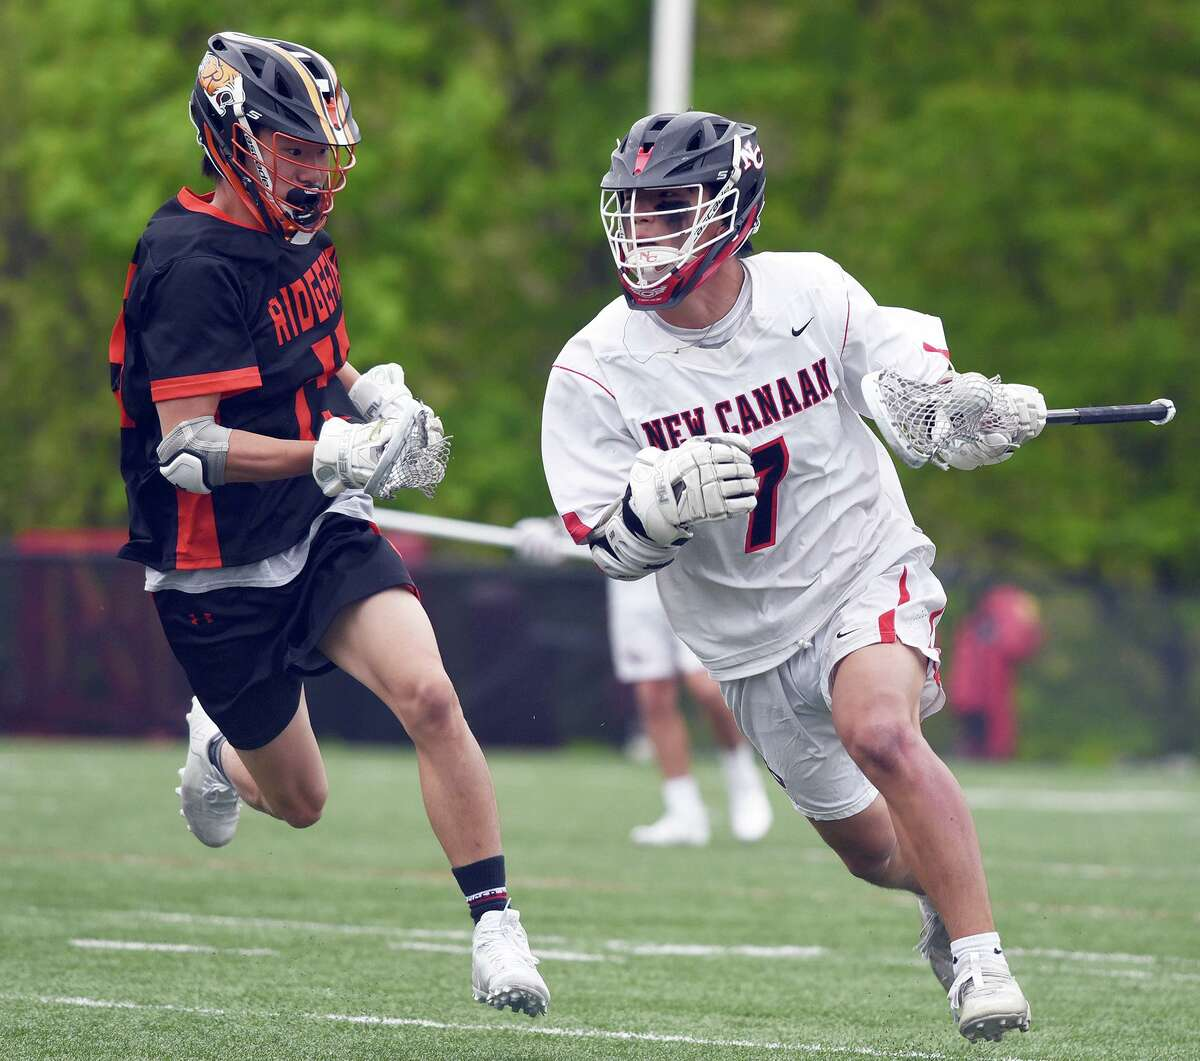 New Canaan's Hayden Shin (7) comes up with the ball during a faceoff, while Ridgefield's Terry Li pursues at Dunning Field in New Canaan on Saturday.